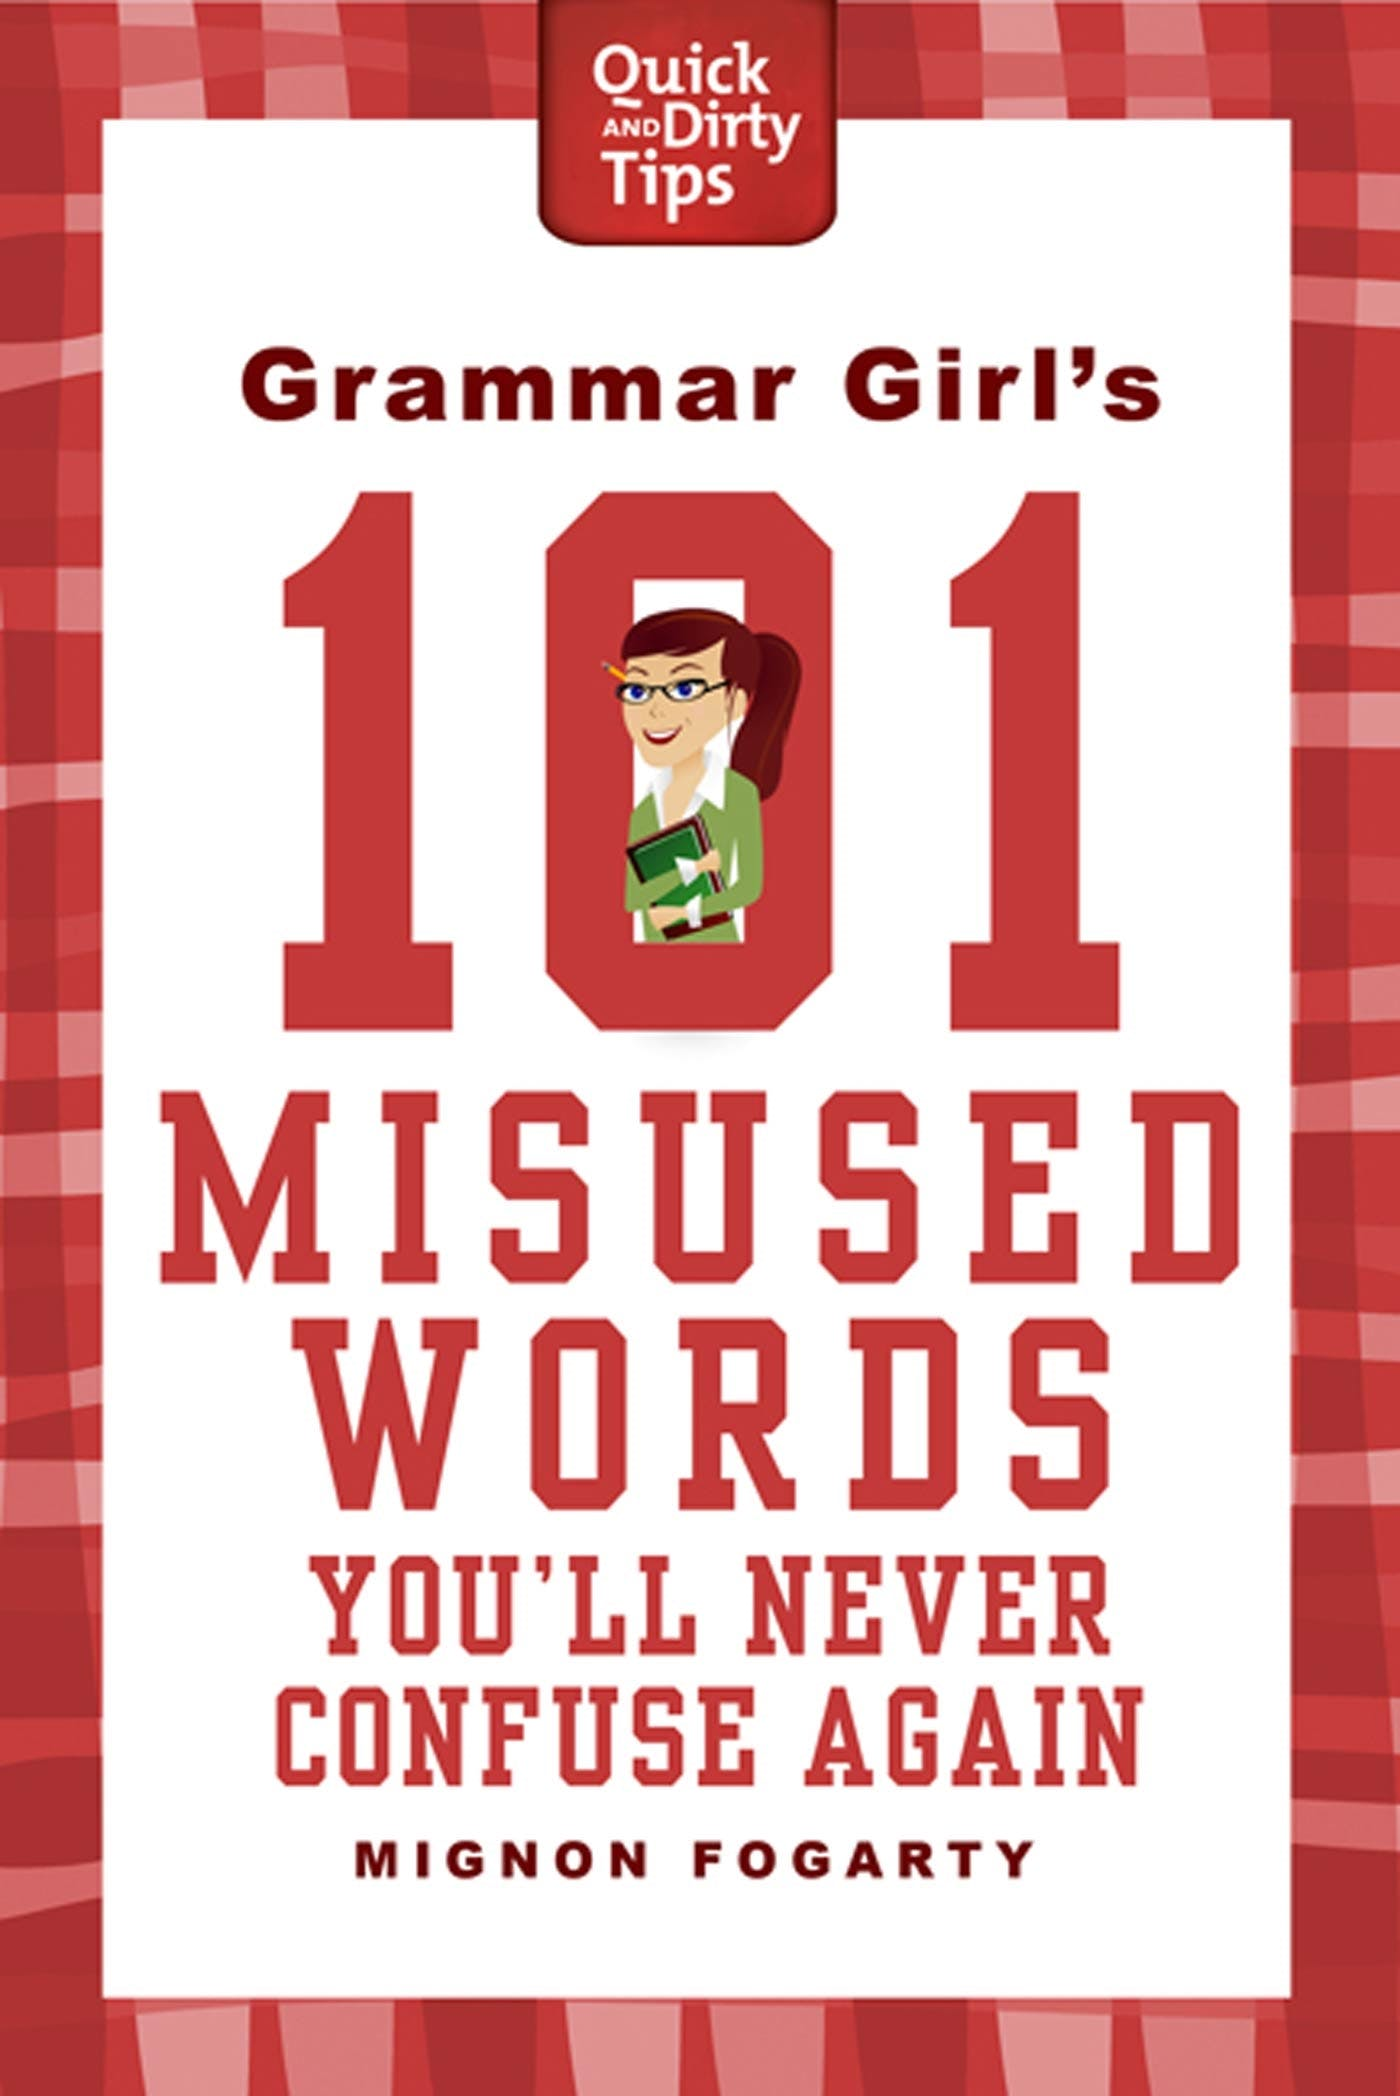 Image of Grammar Girl's 101 Misused Words You'll Never Confuse Again